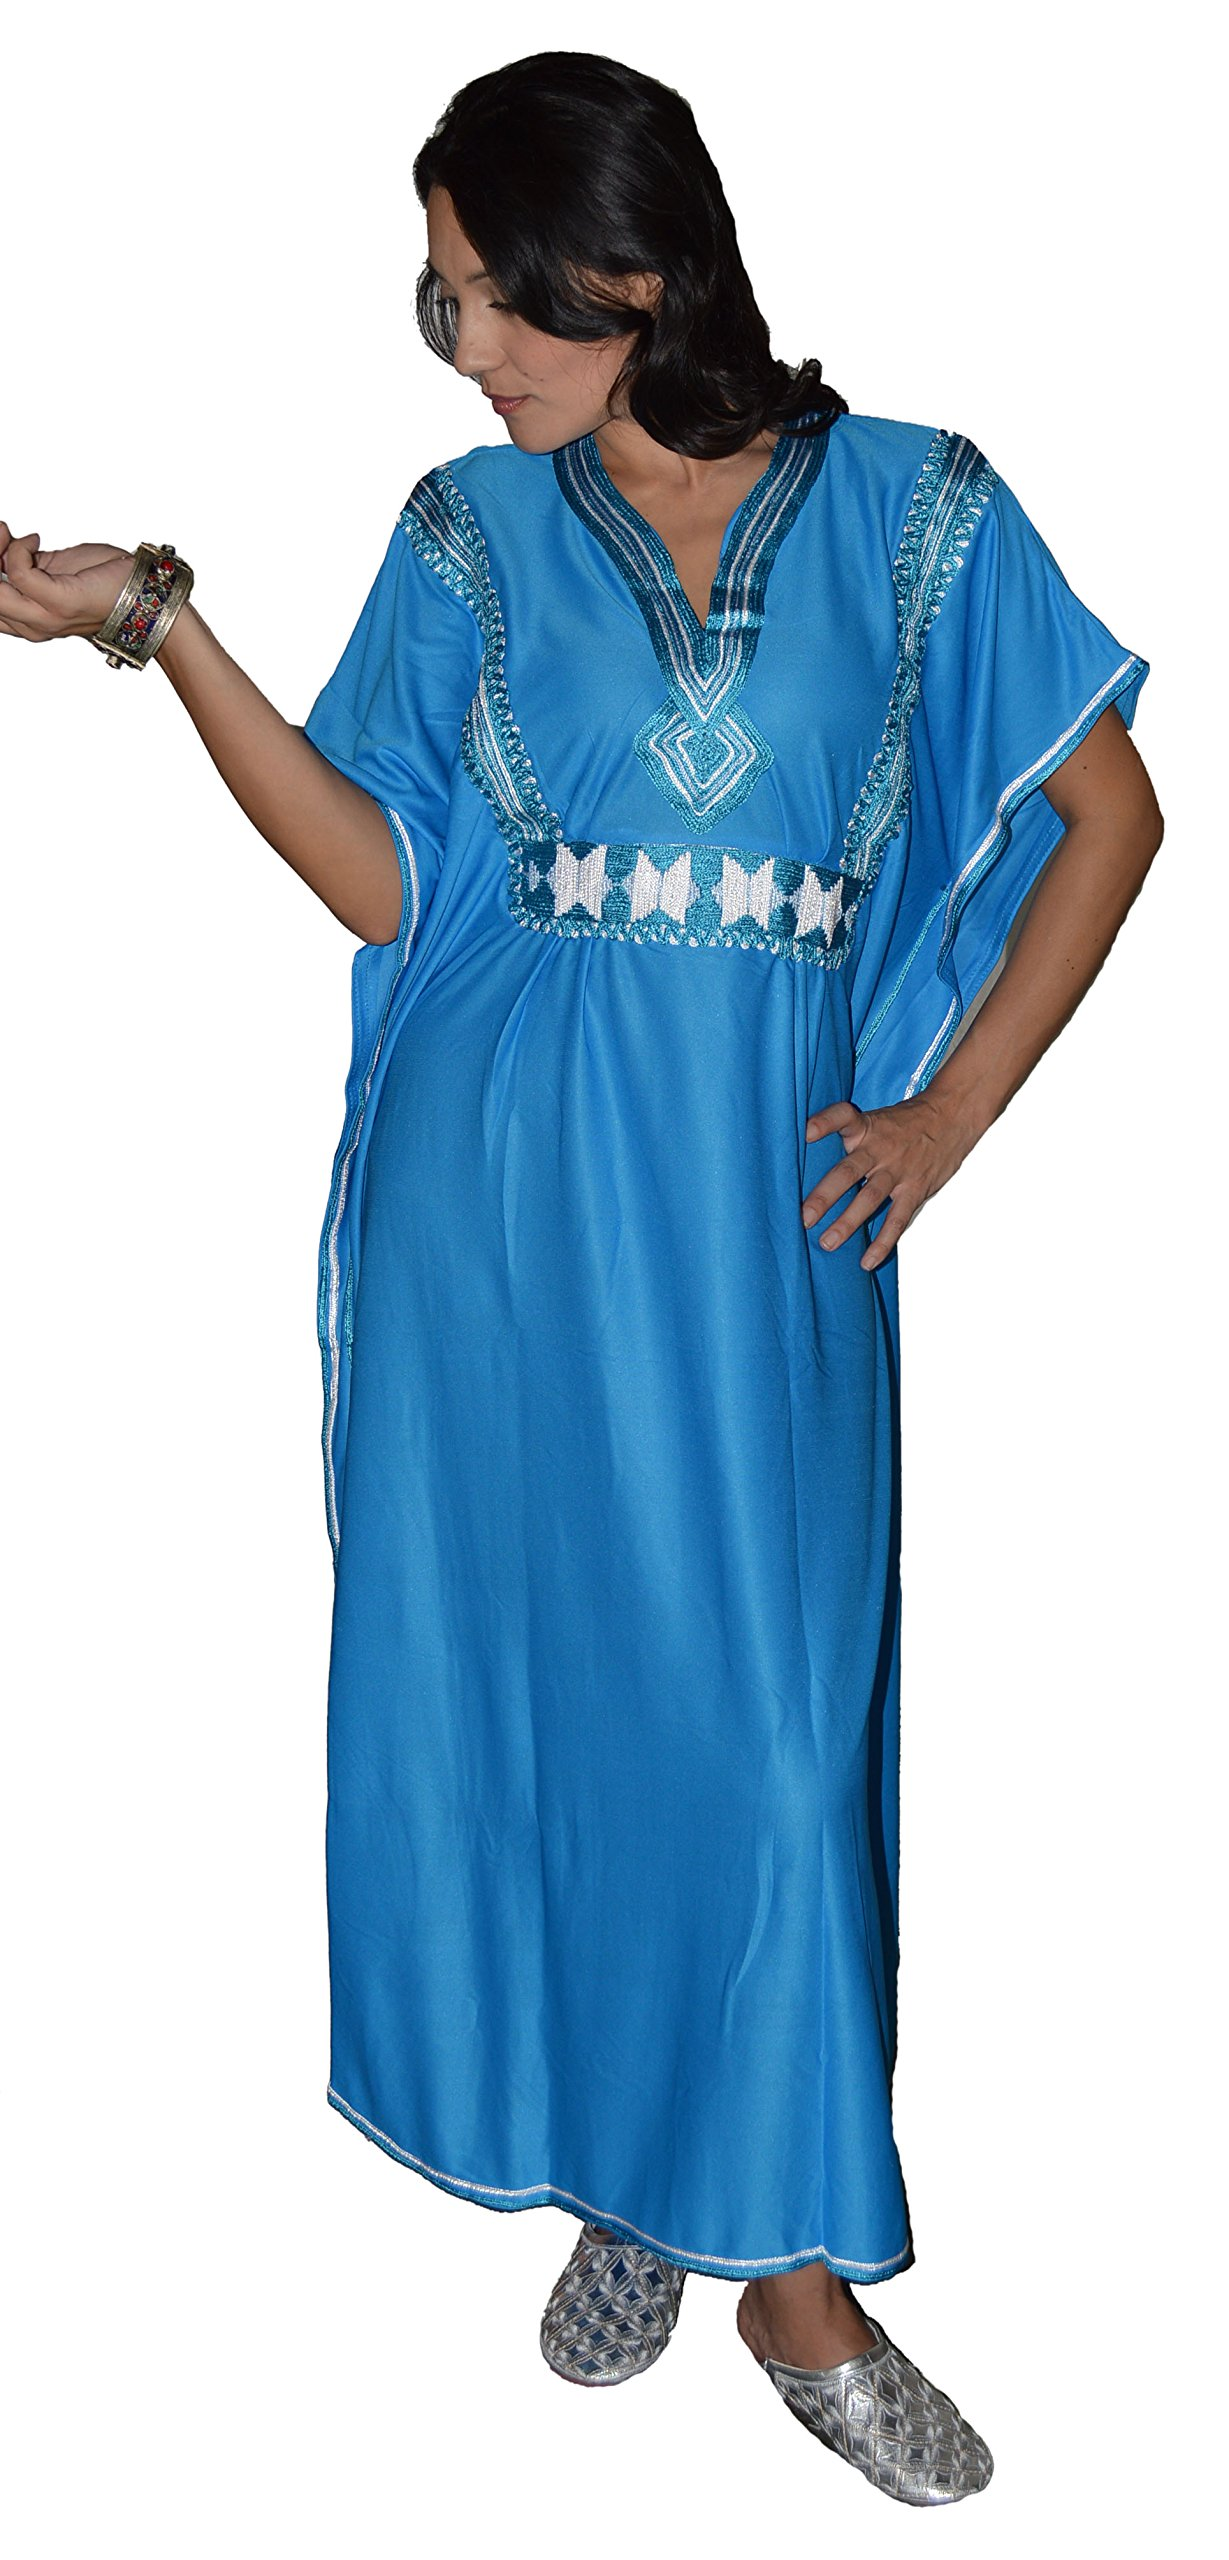 Moroccan Caftans Women Breathable Handmade Butterfly Style Embroidery Ethnic Design Blue by Moroccan Caftans (Image #3)